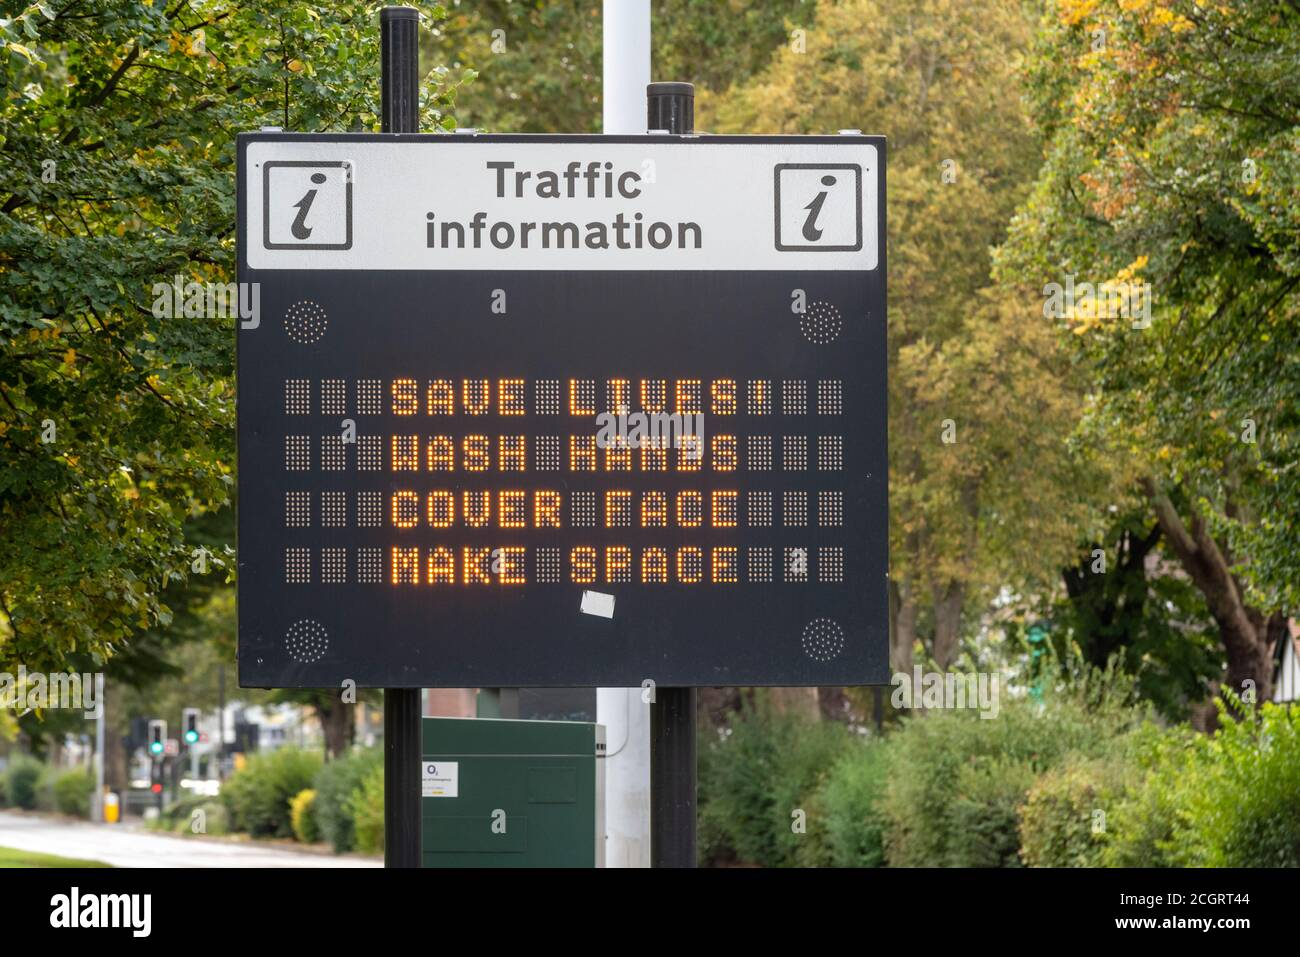 COVID-19 slogan message on traffic information matrix sign. Save lives, wash hands, cover face, make space, message. Southend on Sea, Essex, UK Stock Photo